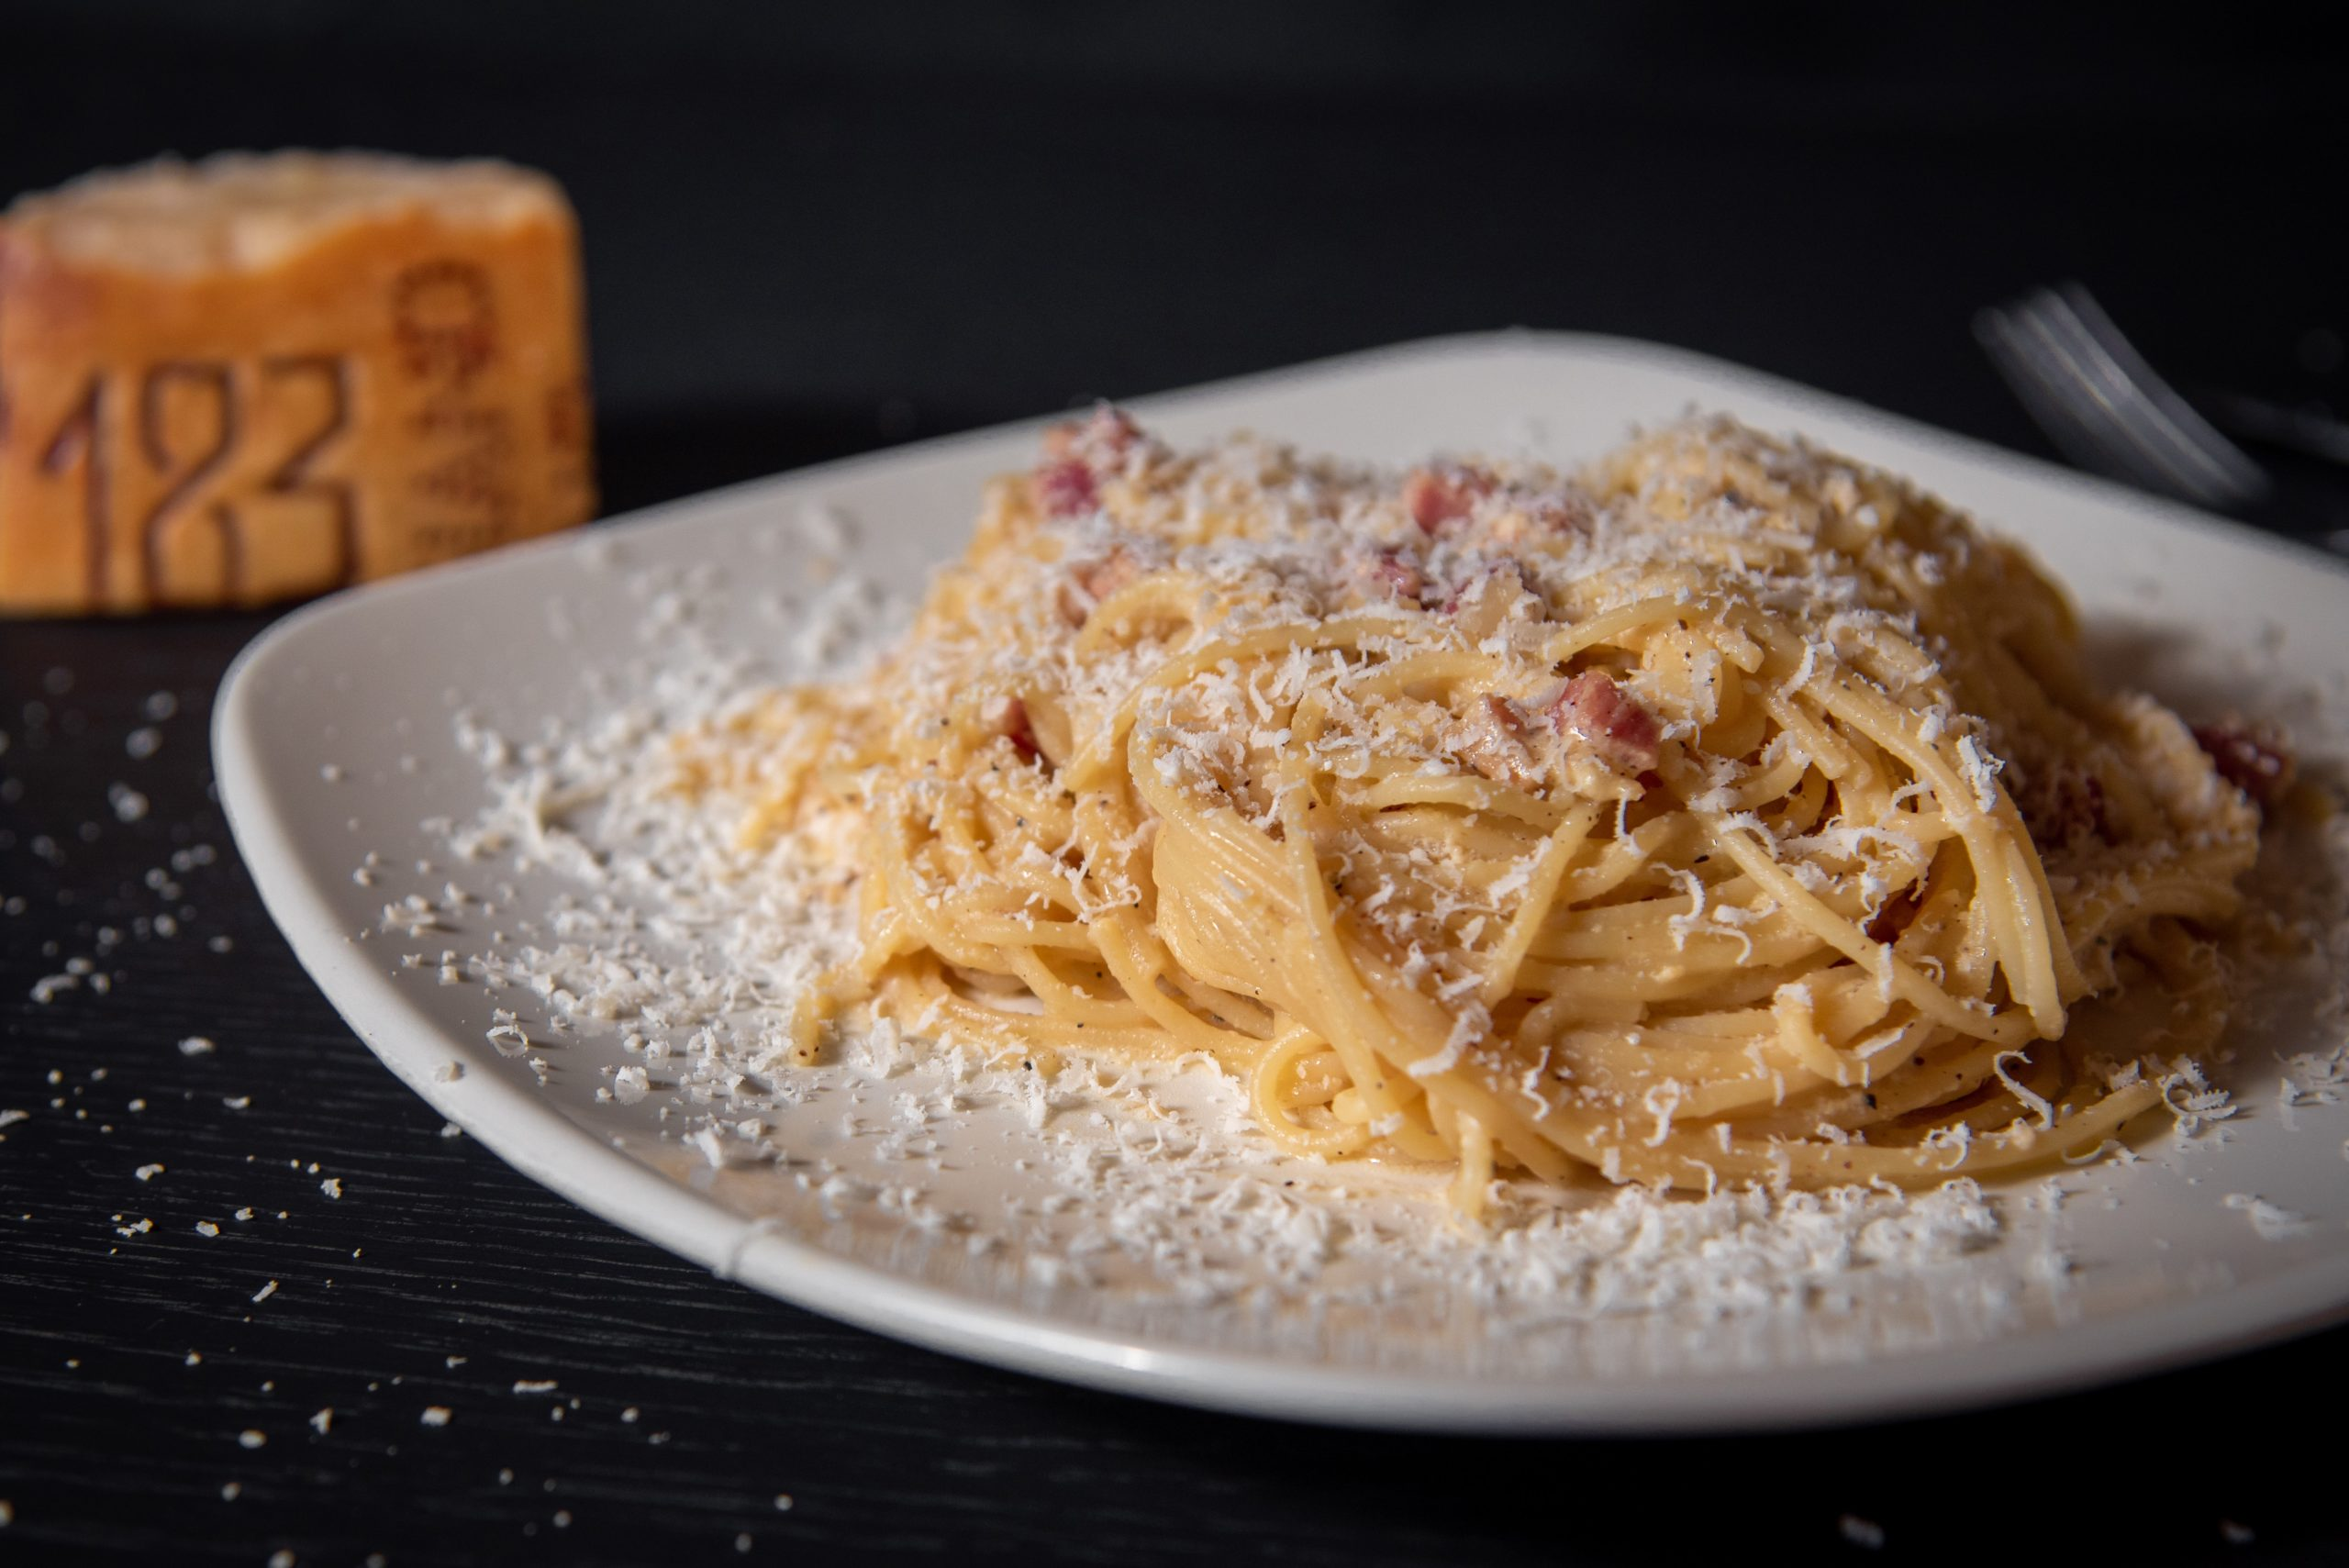 Learn A Little More About Carbonara - Pasta And Cheese Recipe